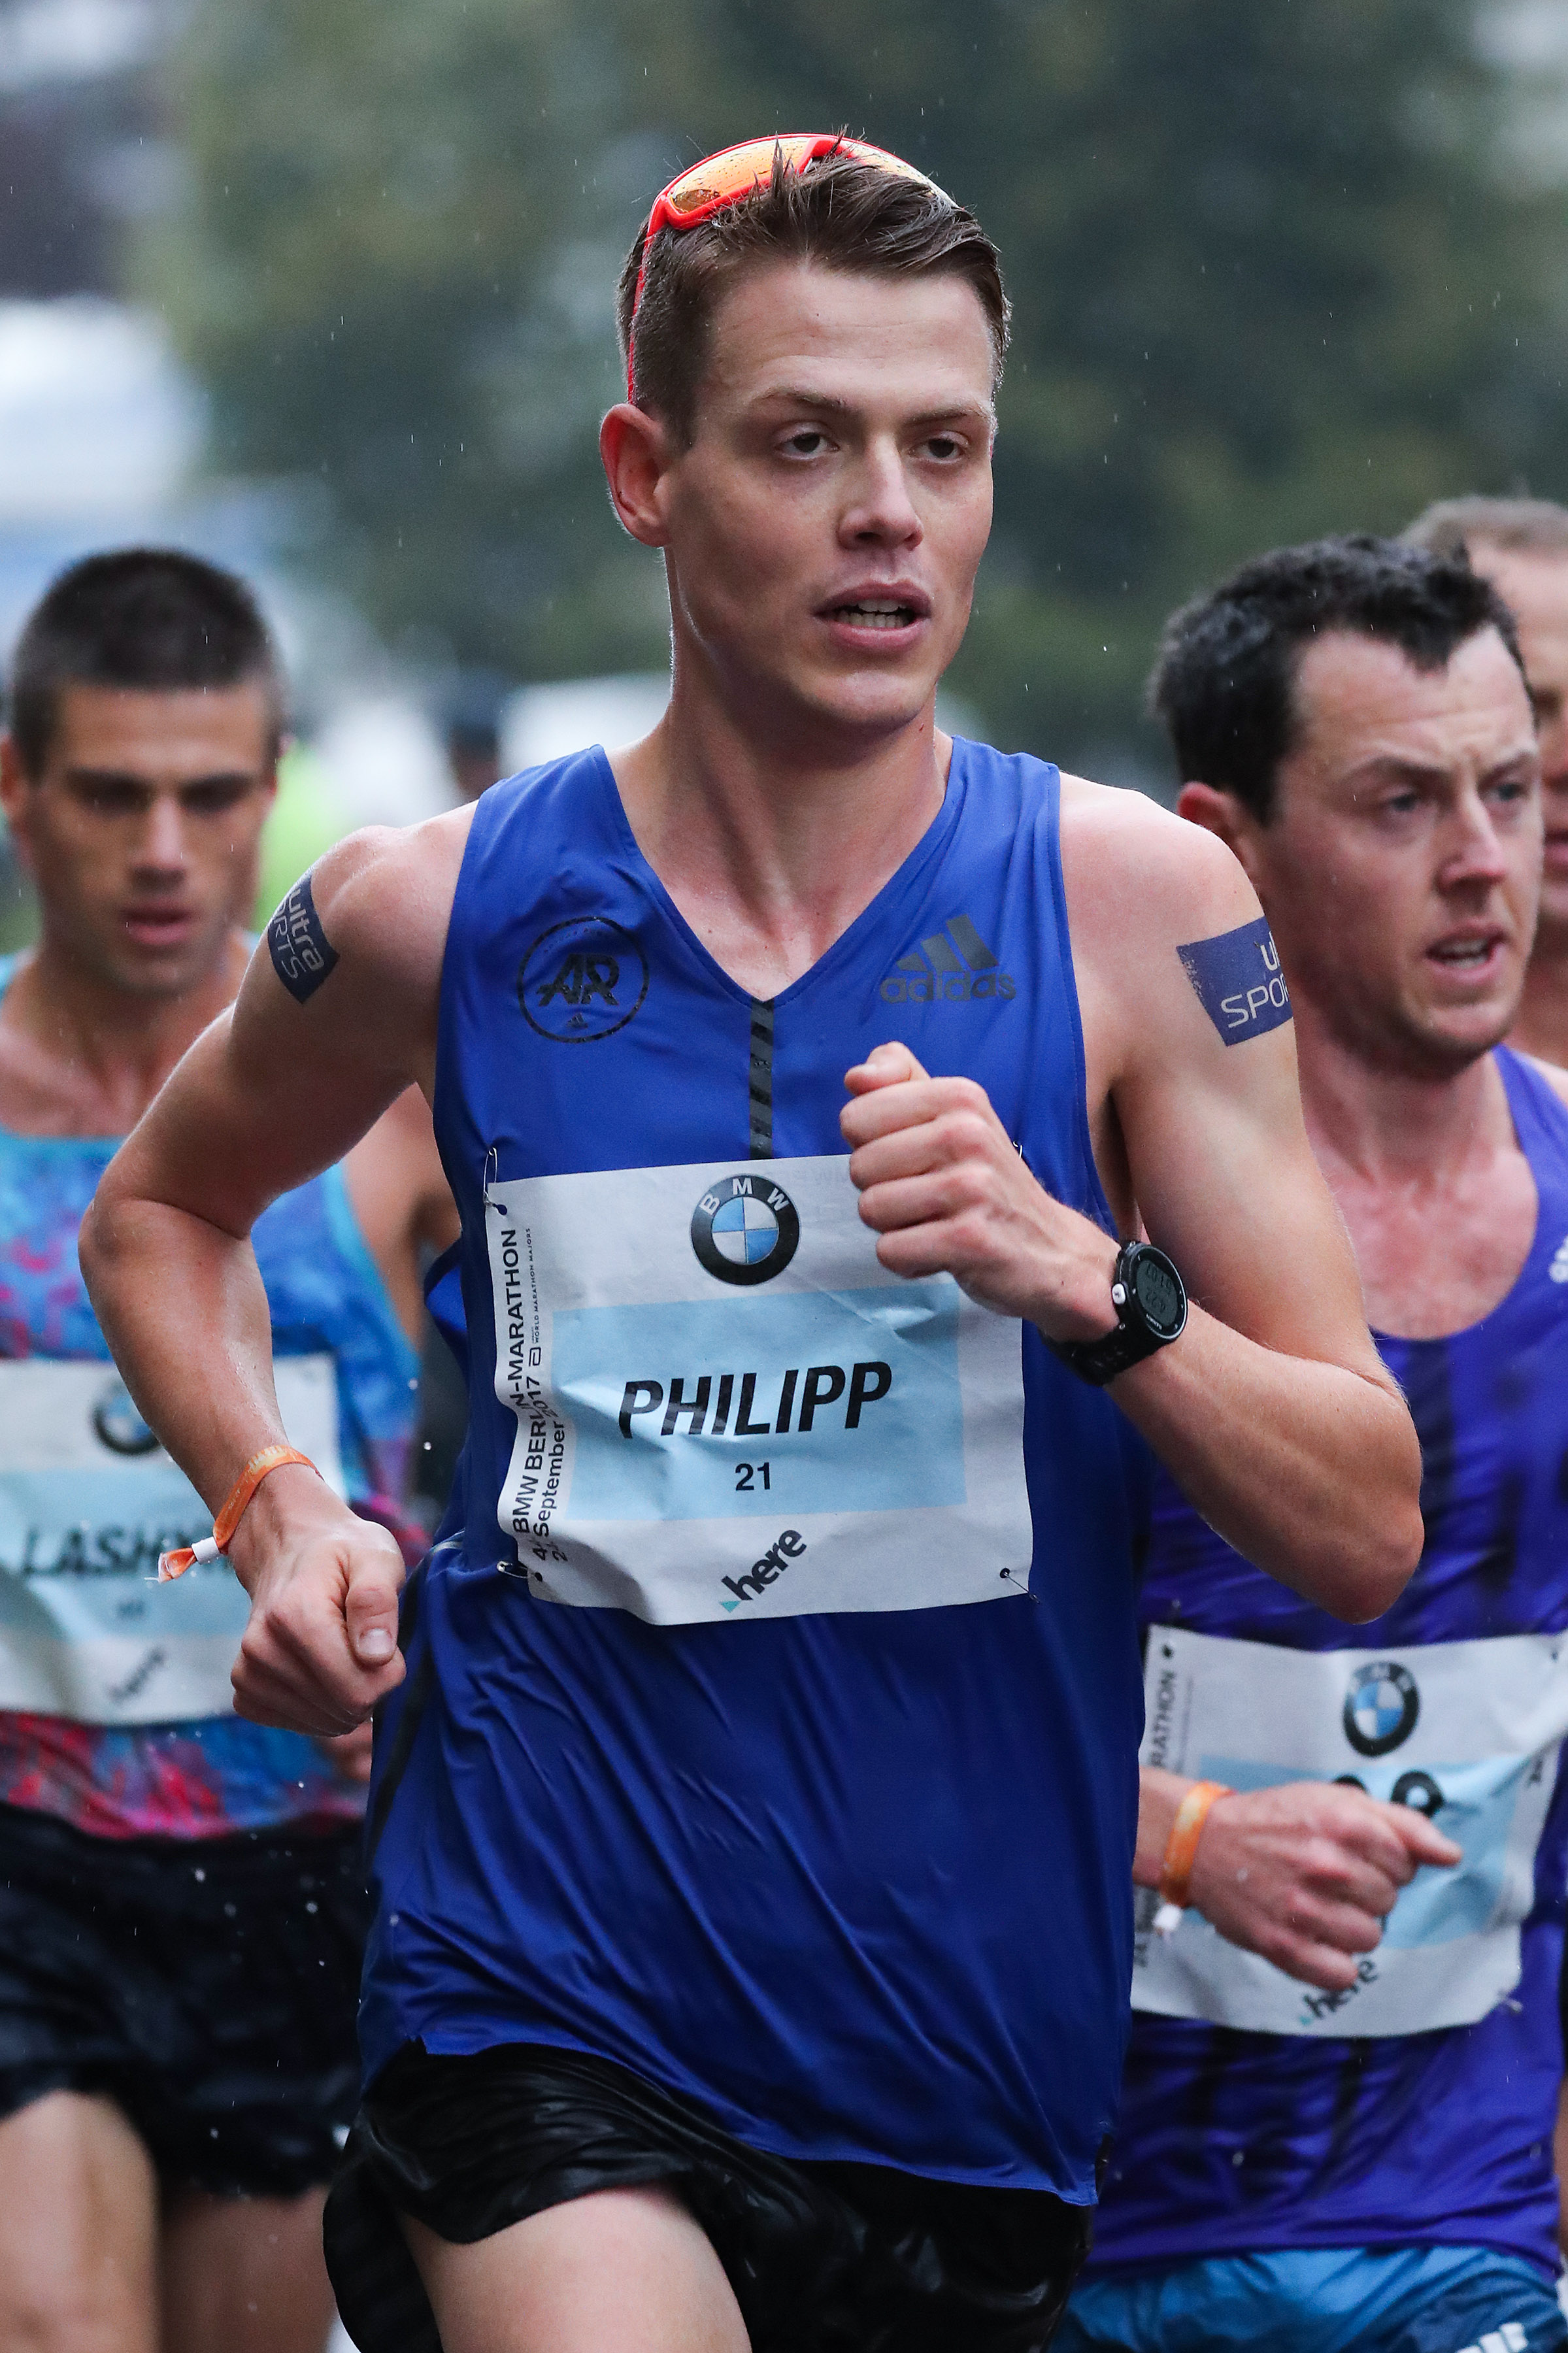 Philipp Pflieger is back in Berlin and ready to race the BMW BERLIN-MARATHON again